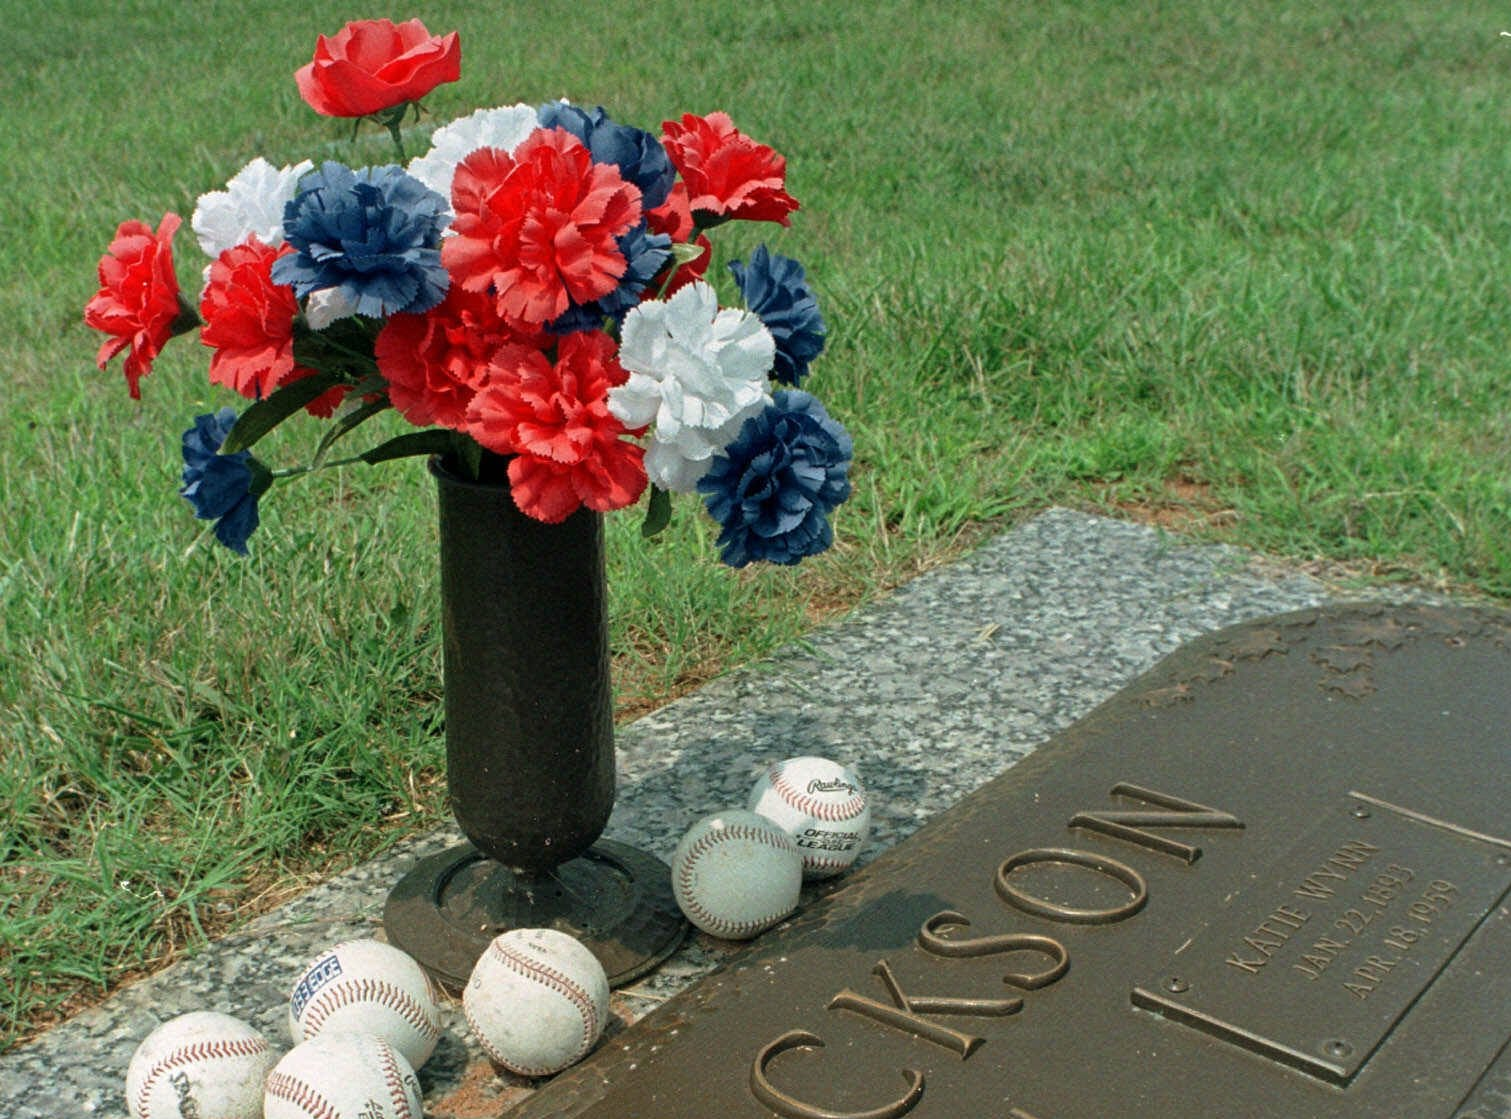 "The grave of Joseph ""Shoeless Joe"" Jackson and his wife Katie is surrounded by baseballs left by visitors at Woodlawn Memorial Gardens in Greenville, S.C., in this July 20, 1999 photo. Greenville, Jackson's hometown, is finally starting to rise and join the calls to recognize him as one of baseball's most celebrated and disgraced players deserving a place in the baseball Hall of Fame. (AP Photo/Mary Ann Chastain)"